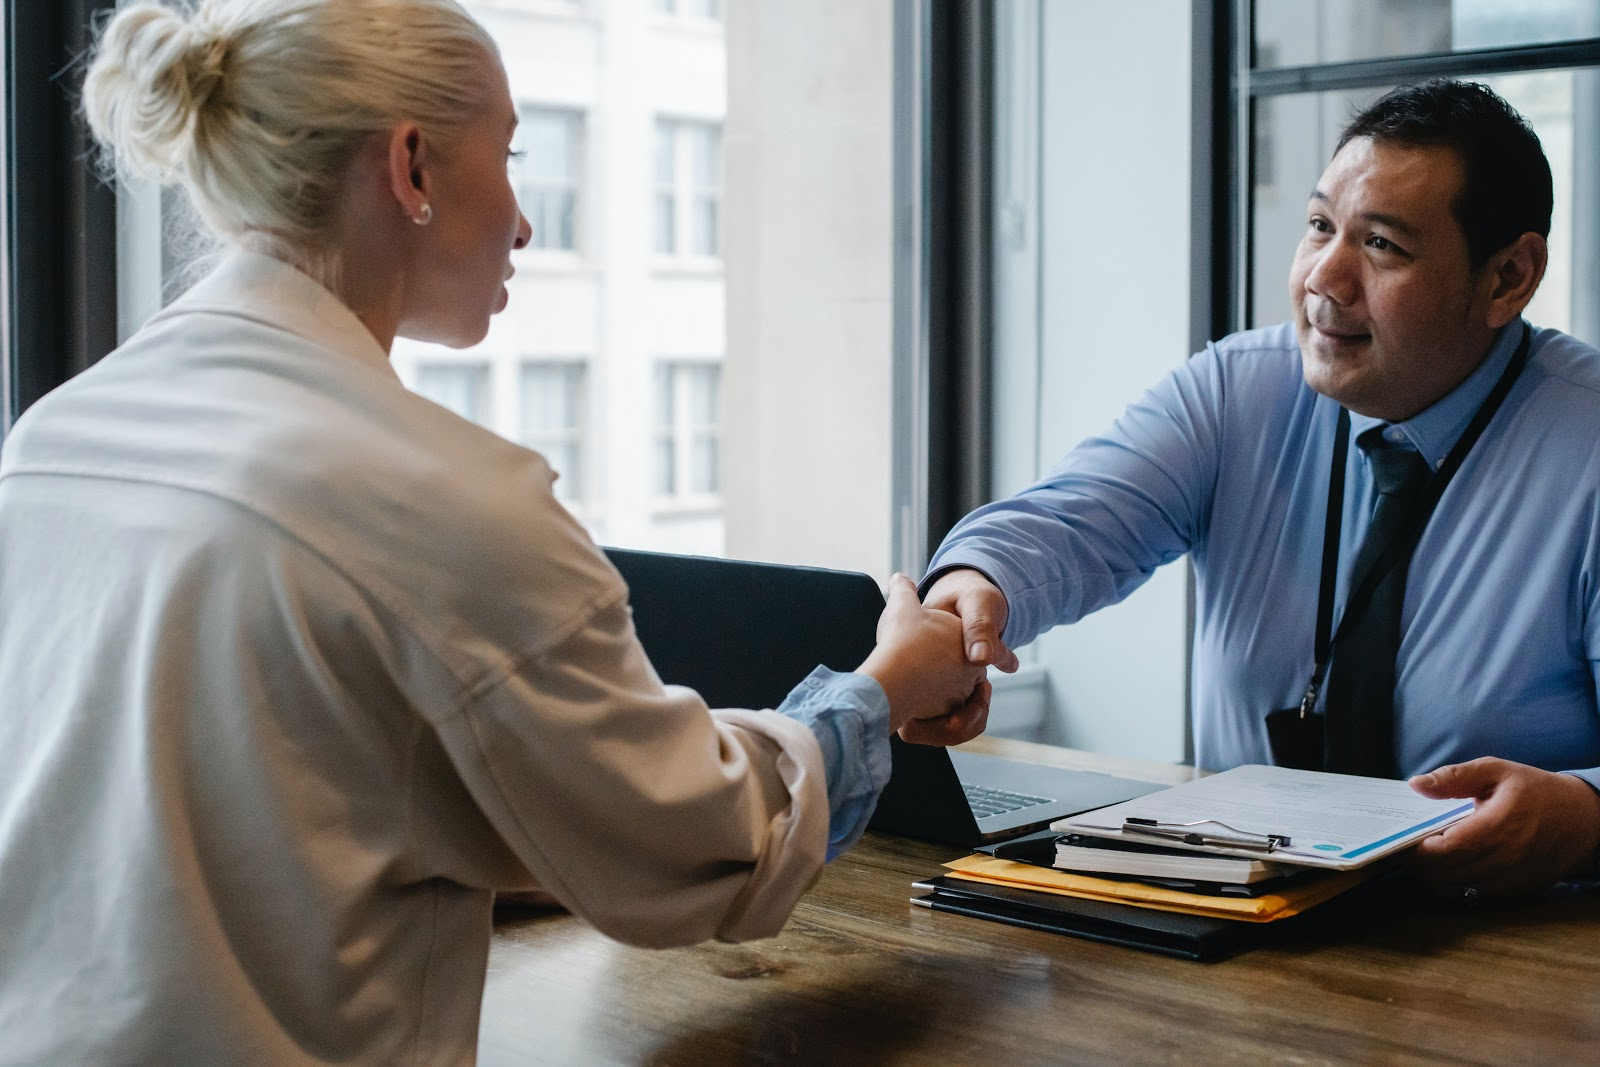 Interview Questions to Test 10 Different Soft Skills